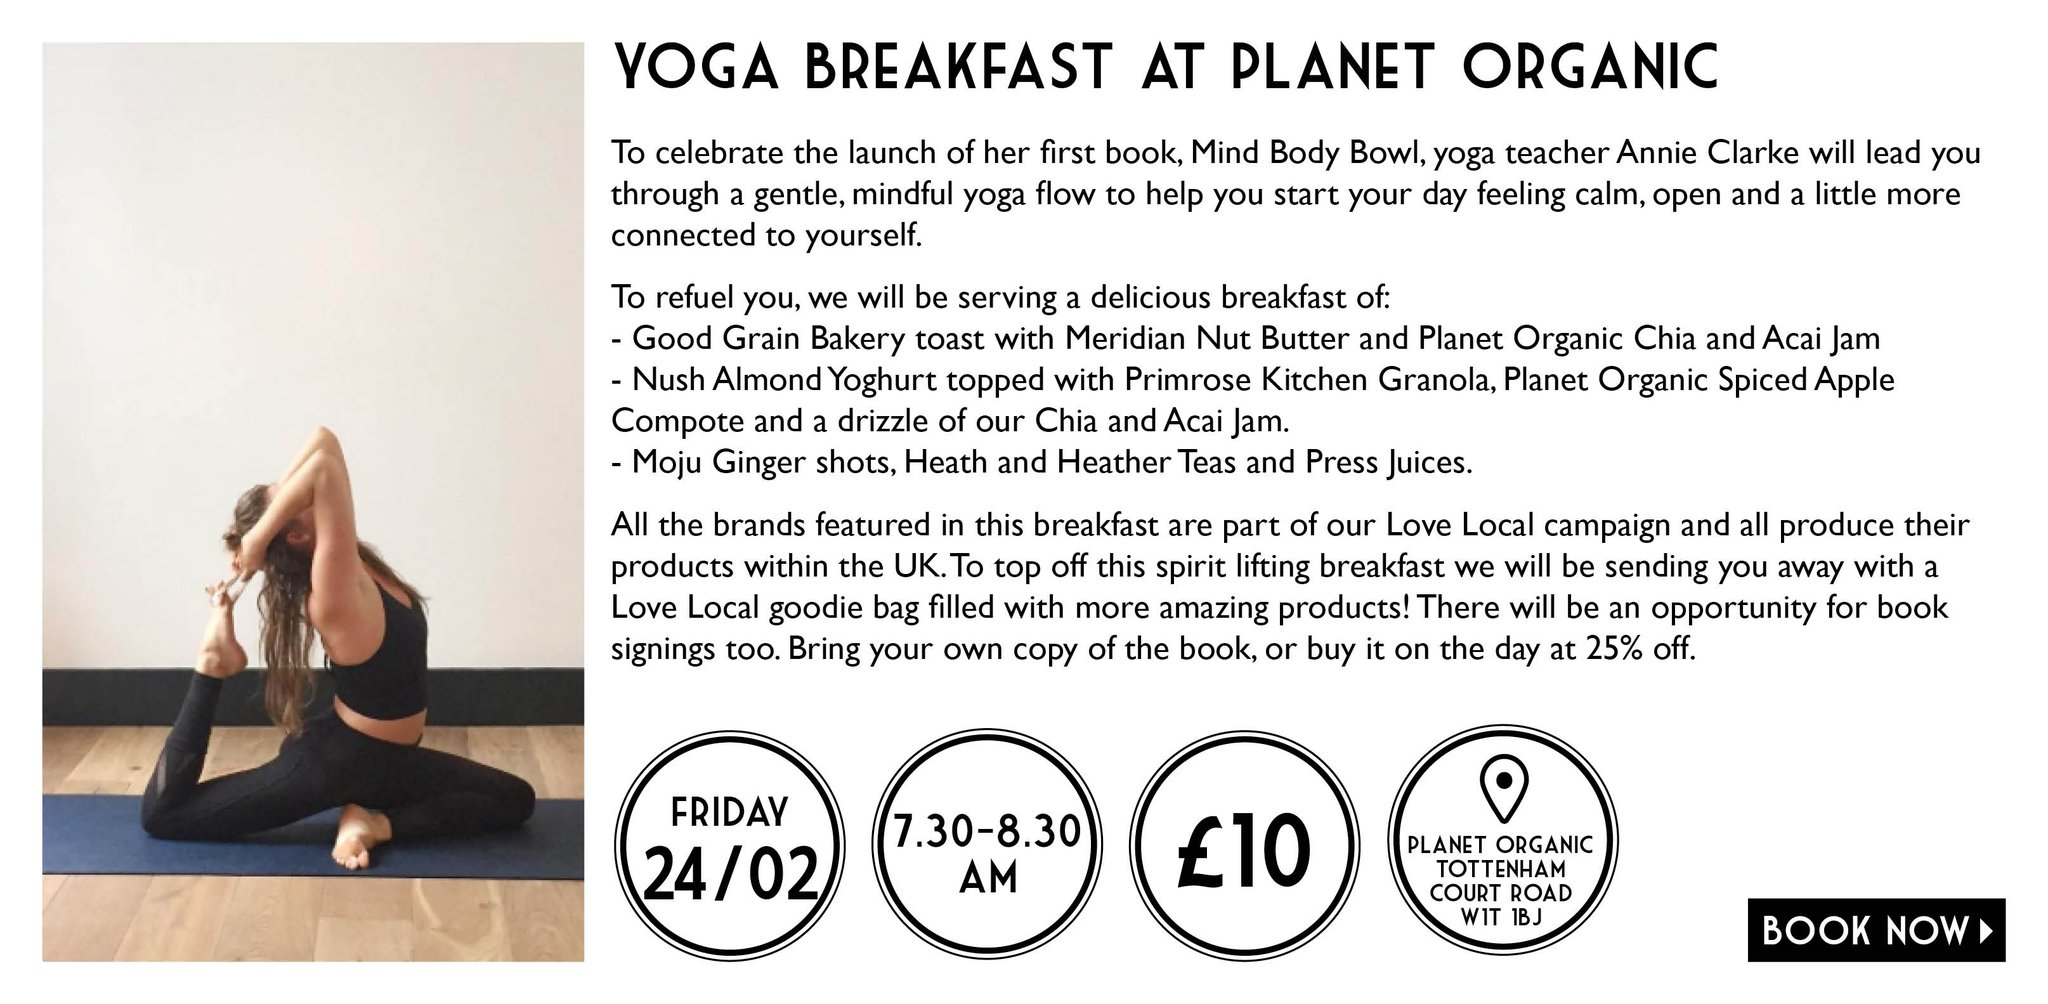 Planet organic on twitter book your place on mindbodybowl planet organic on twitter book your place on mindbodybowl yoga breakfast on 242 tottenhamcourtrd a gentle yoga flow with polovelocal breakfast solutioingenieria Gallery